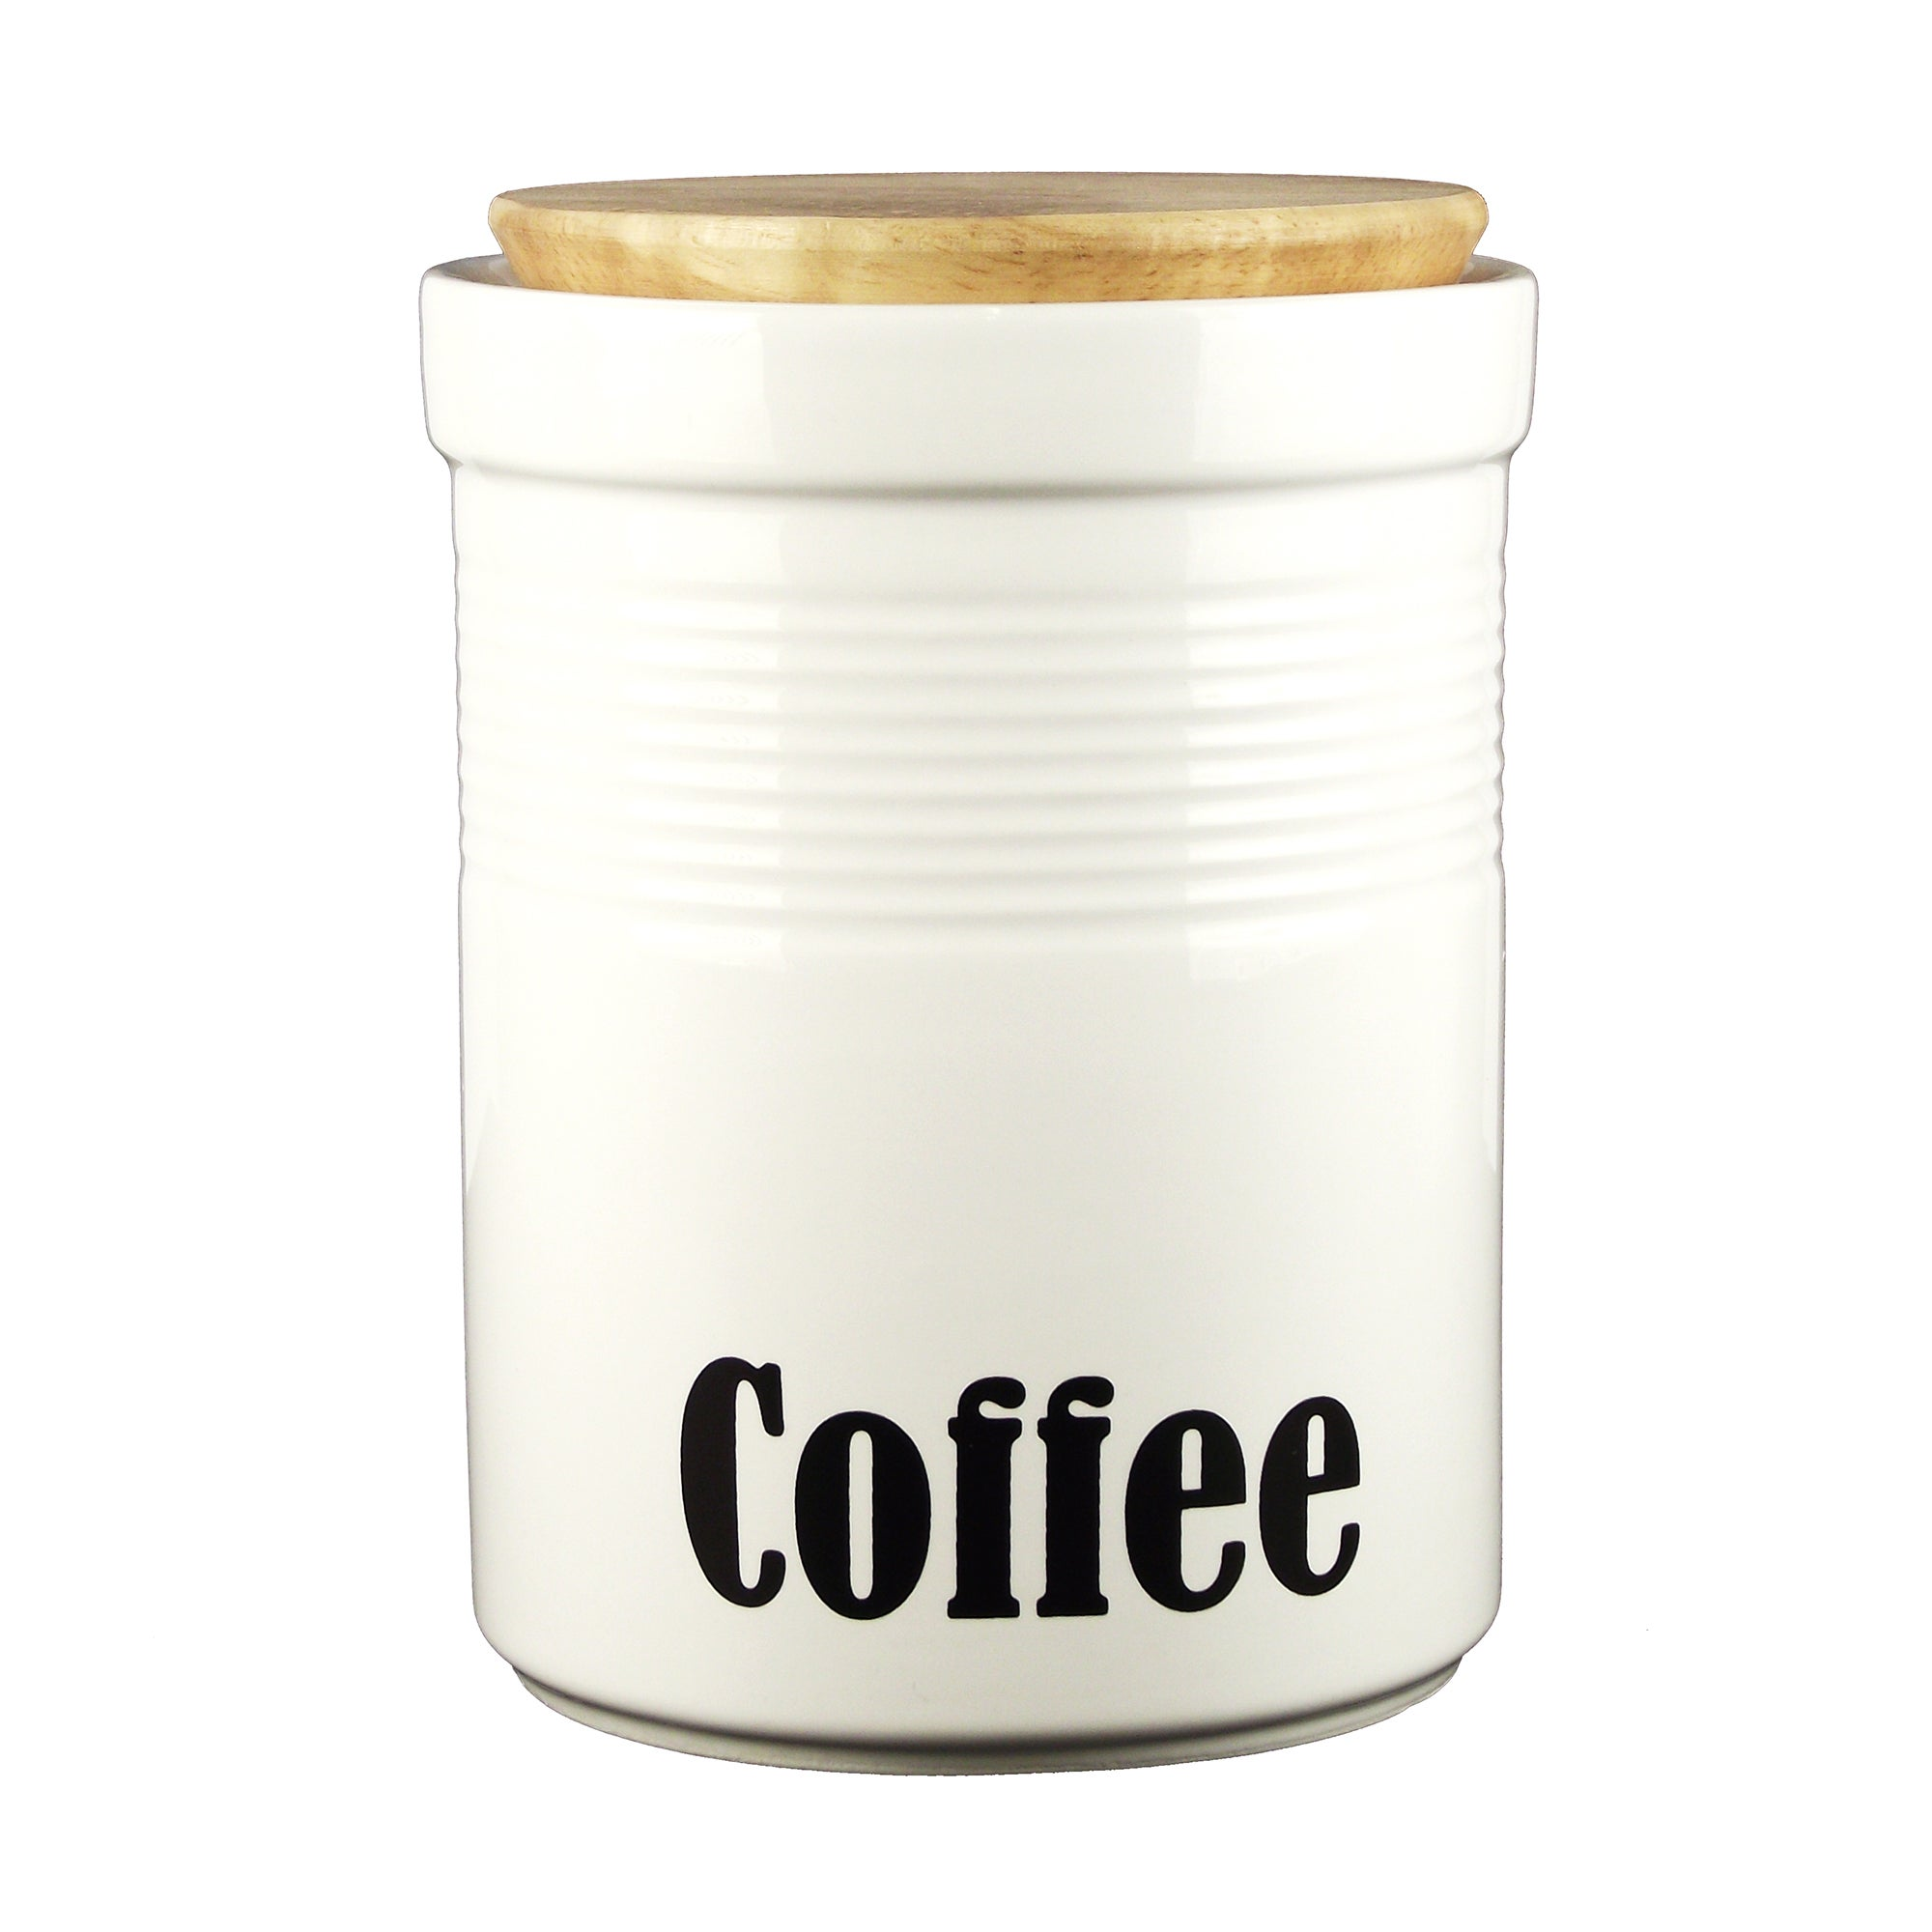 Back to Basics Collection Coffee Canister